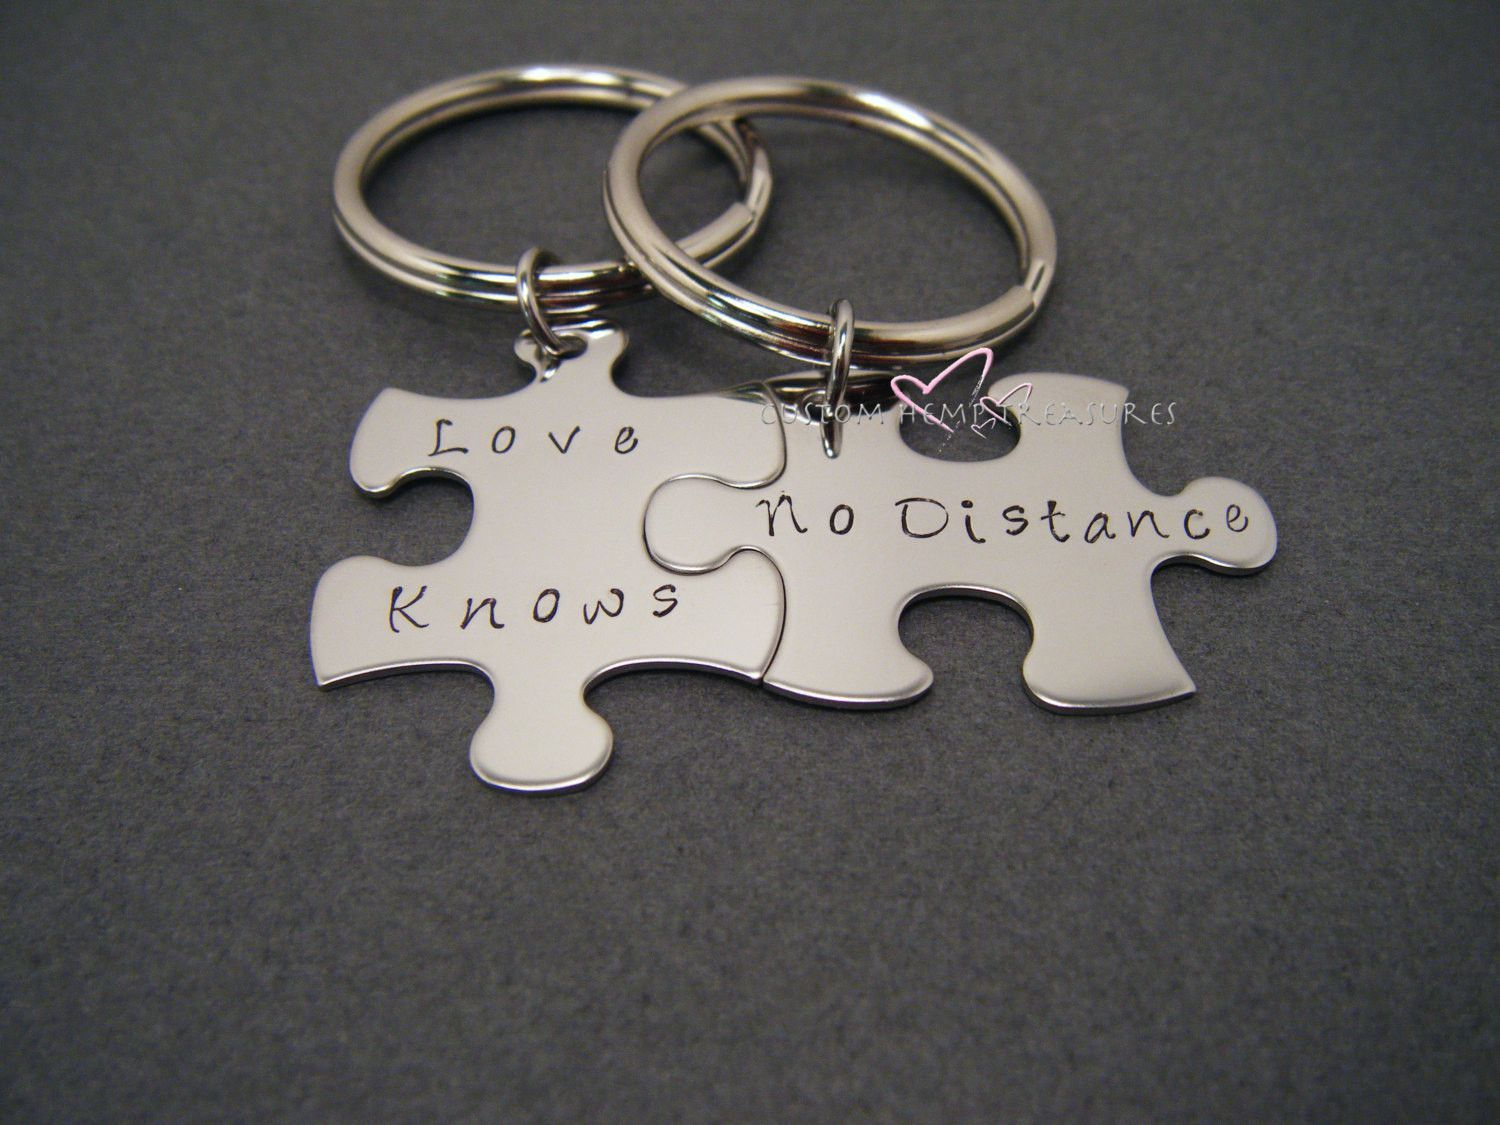 Long Distance Relationship Love Knows No Distance LDR Gift Anniversary GiftCouple Gift Boyfriend Girlfriend Gift Couples Keychains #LongDistance & Love Knows No Distance LDR Gift Anniversary GiftCouple Gift ...